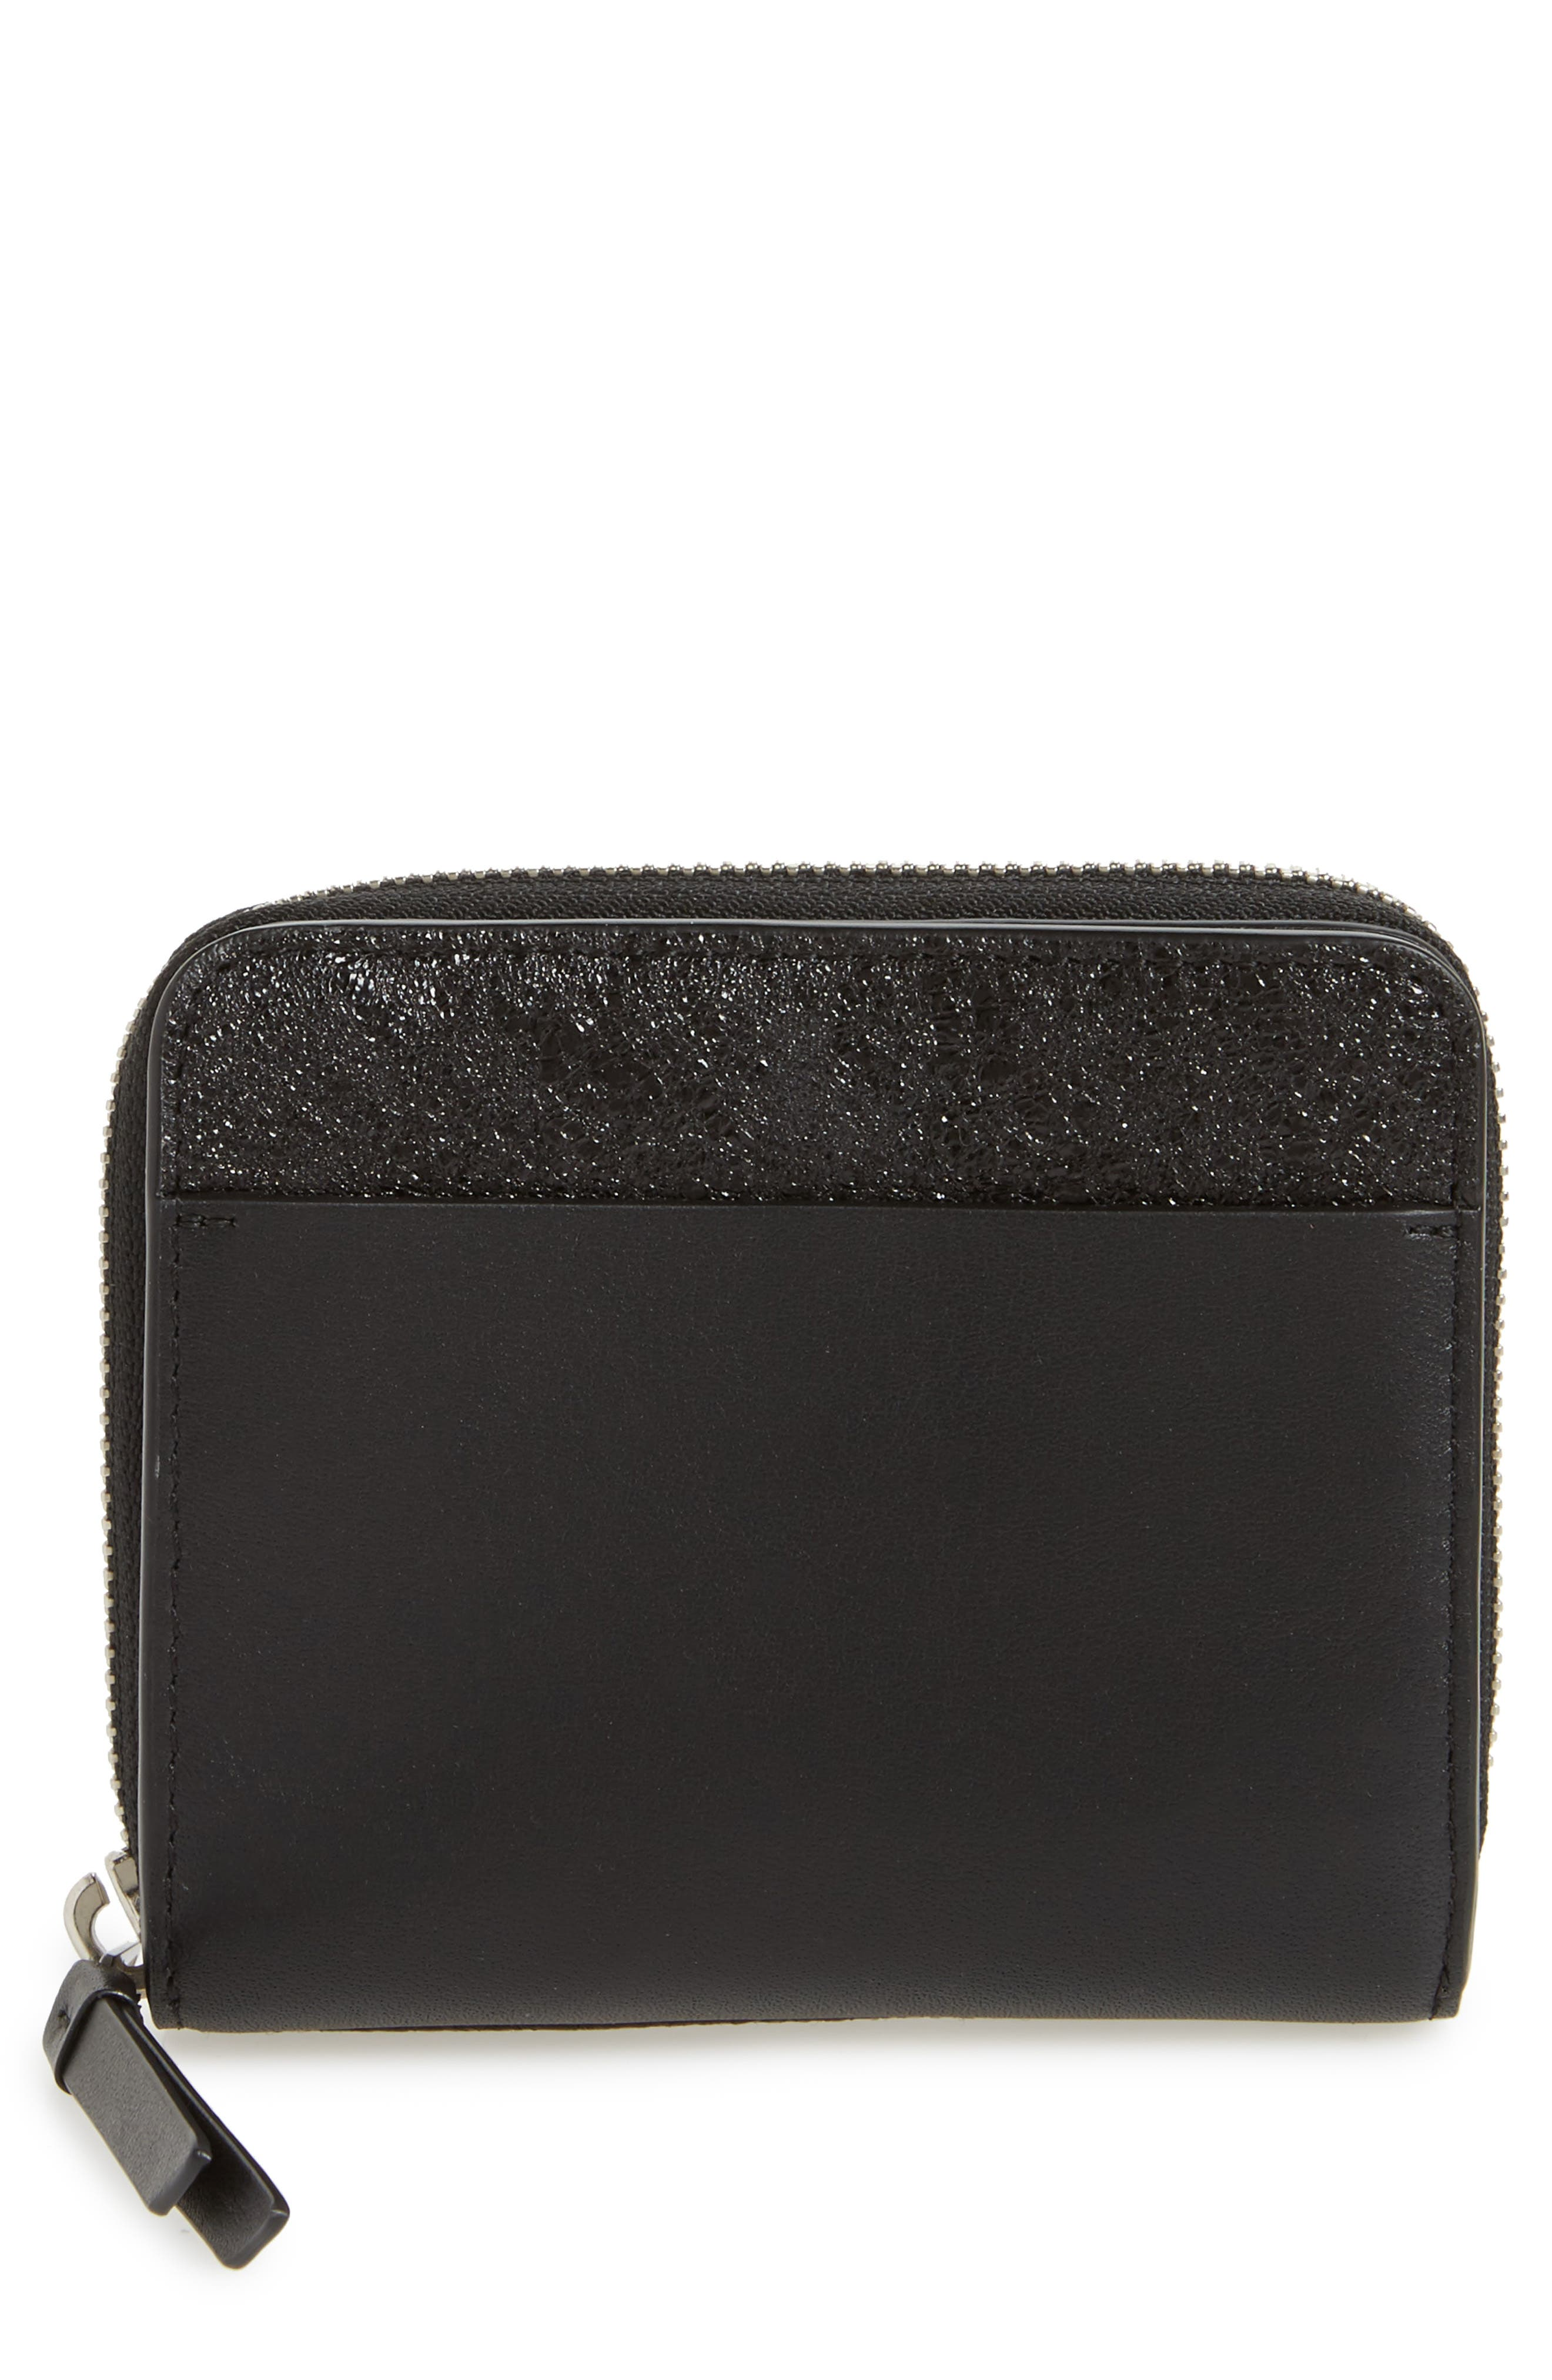 Mast Shine Leather Wallet,                         Main,                         color, Black